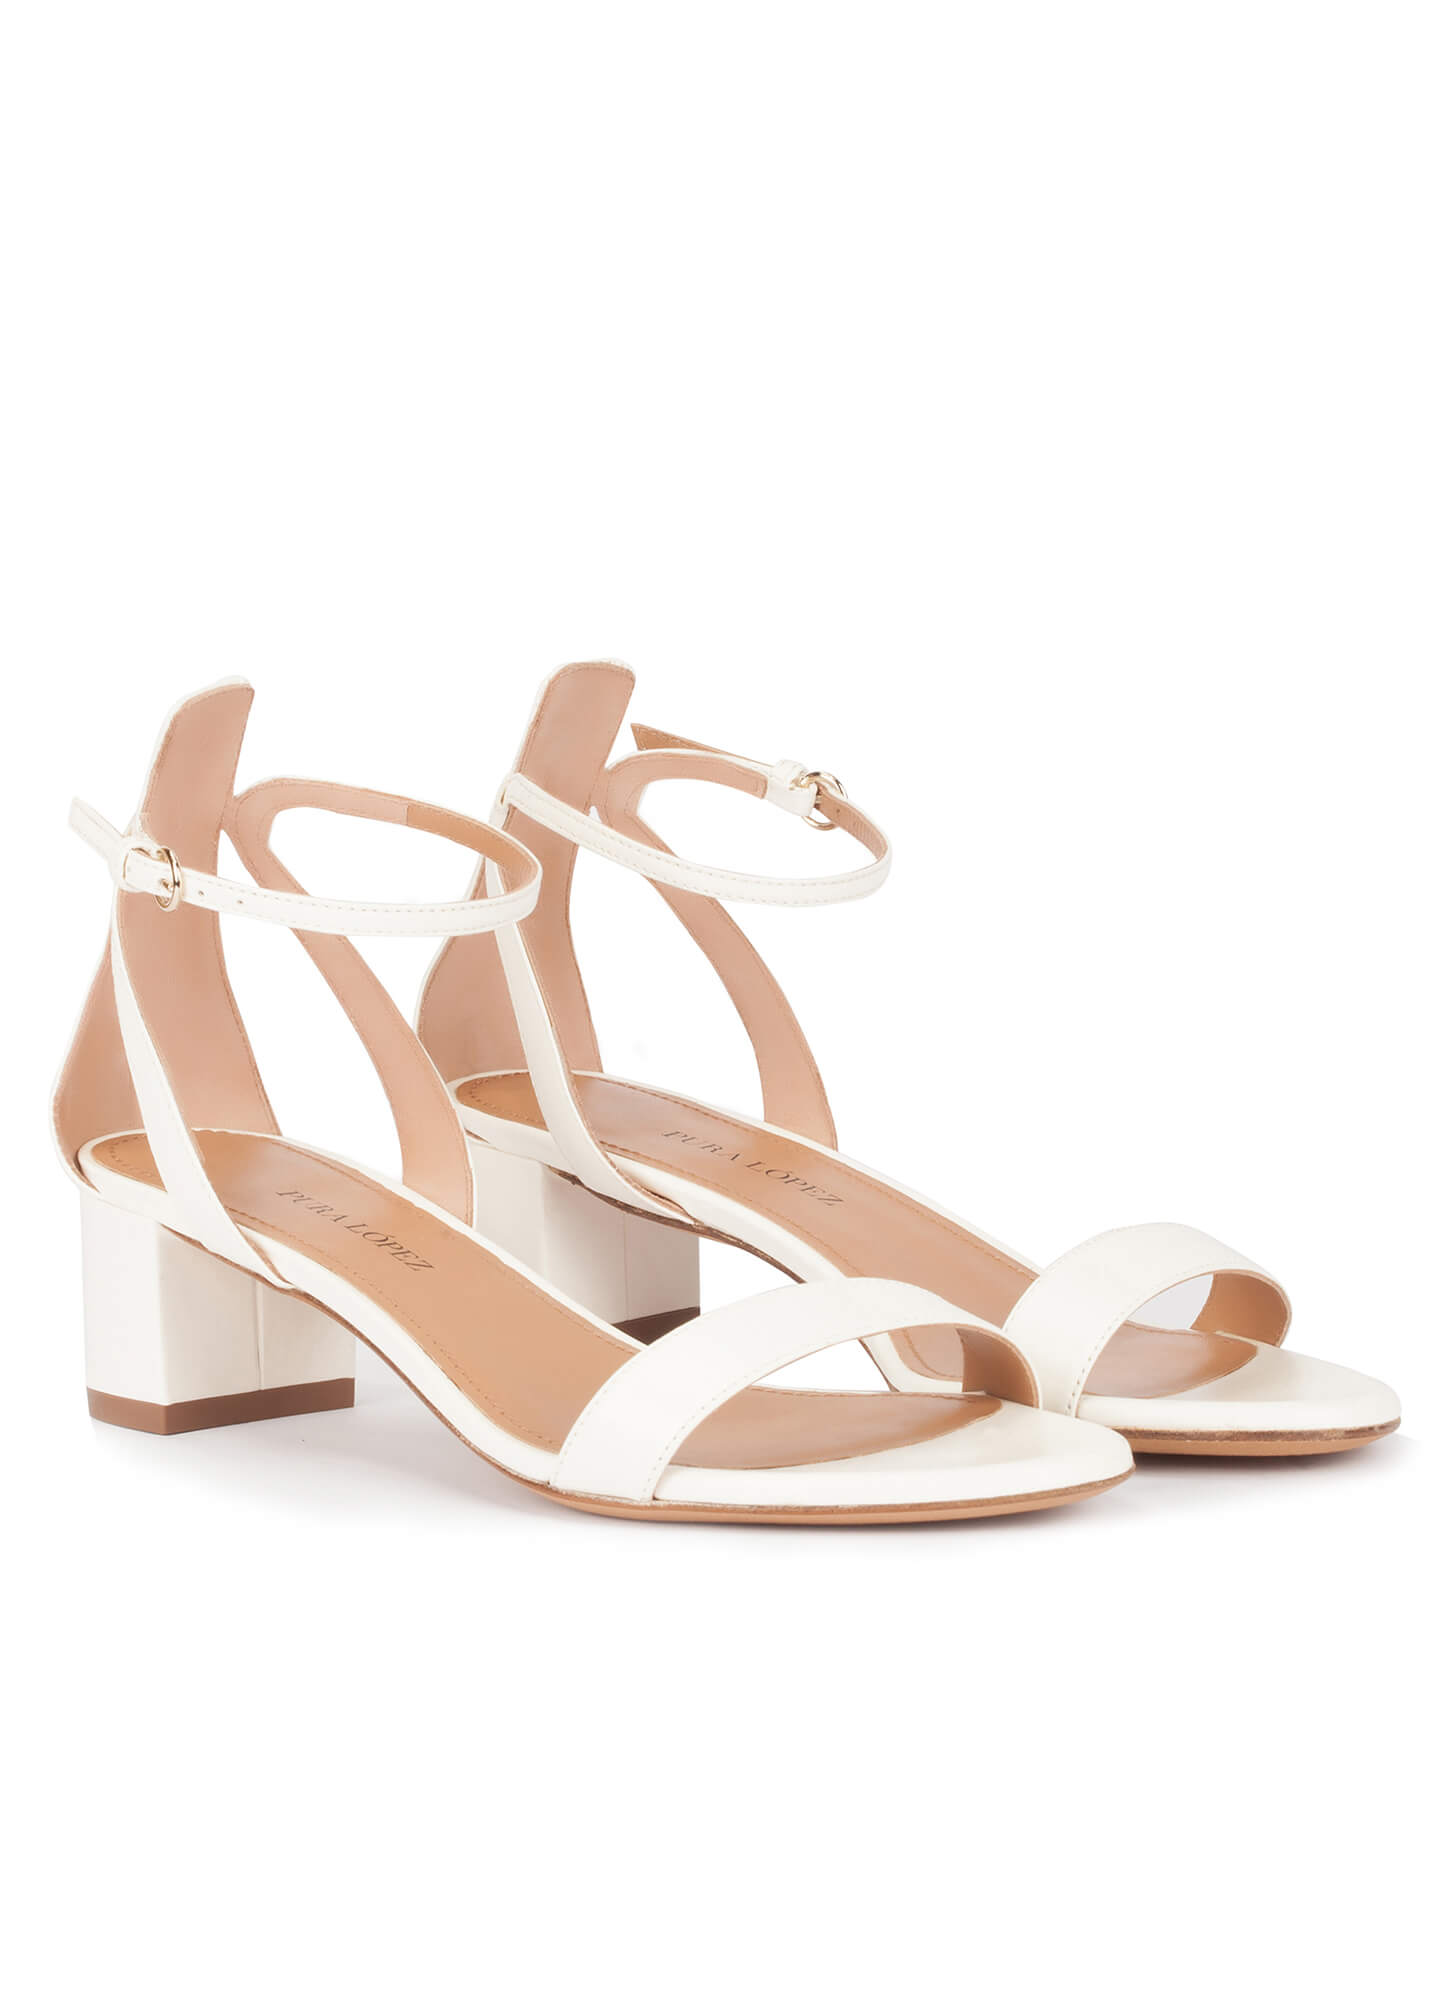 c37c12ccacee Ankle strap mid block heel sandals in offwhite leather. Oneida Pura López